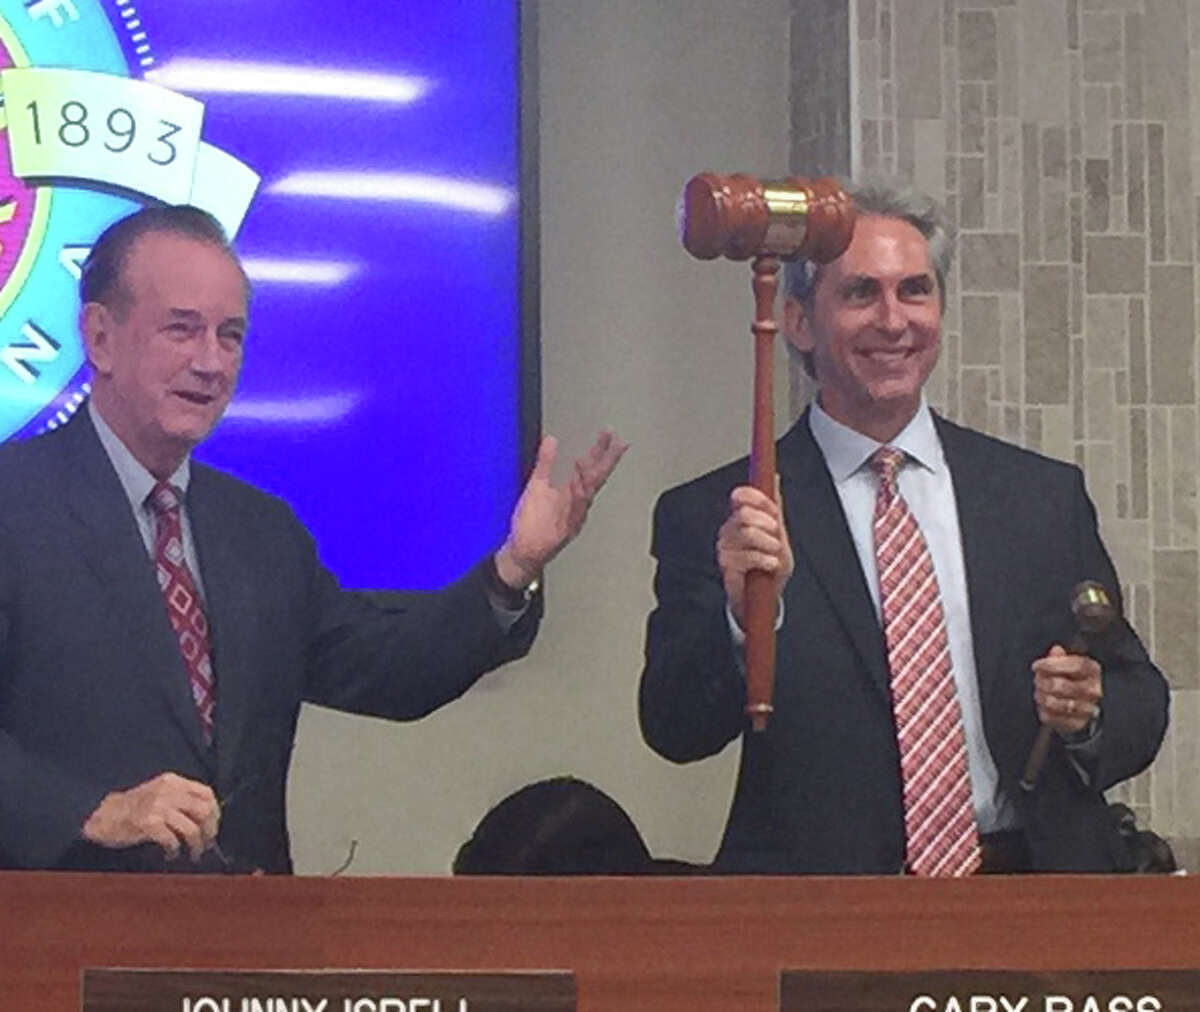 Former Pasadena Mayor Johnny Isbell, left, passes the gavel to City Councilman Jeff Wagner, his successor. Wagner has not made a decision about continuing the city's appeal in a voting rights case.